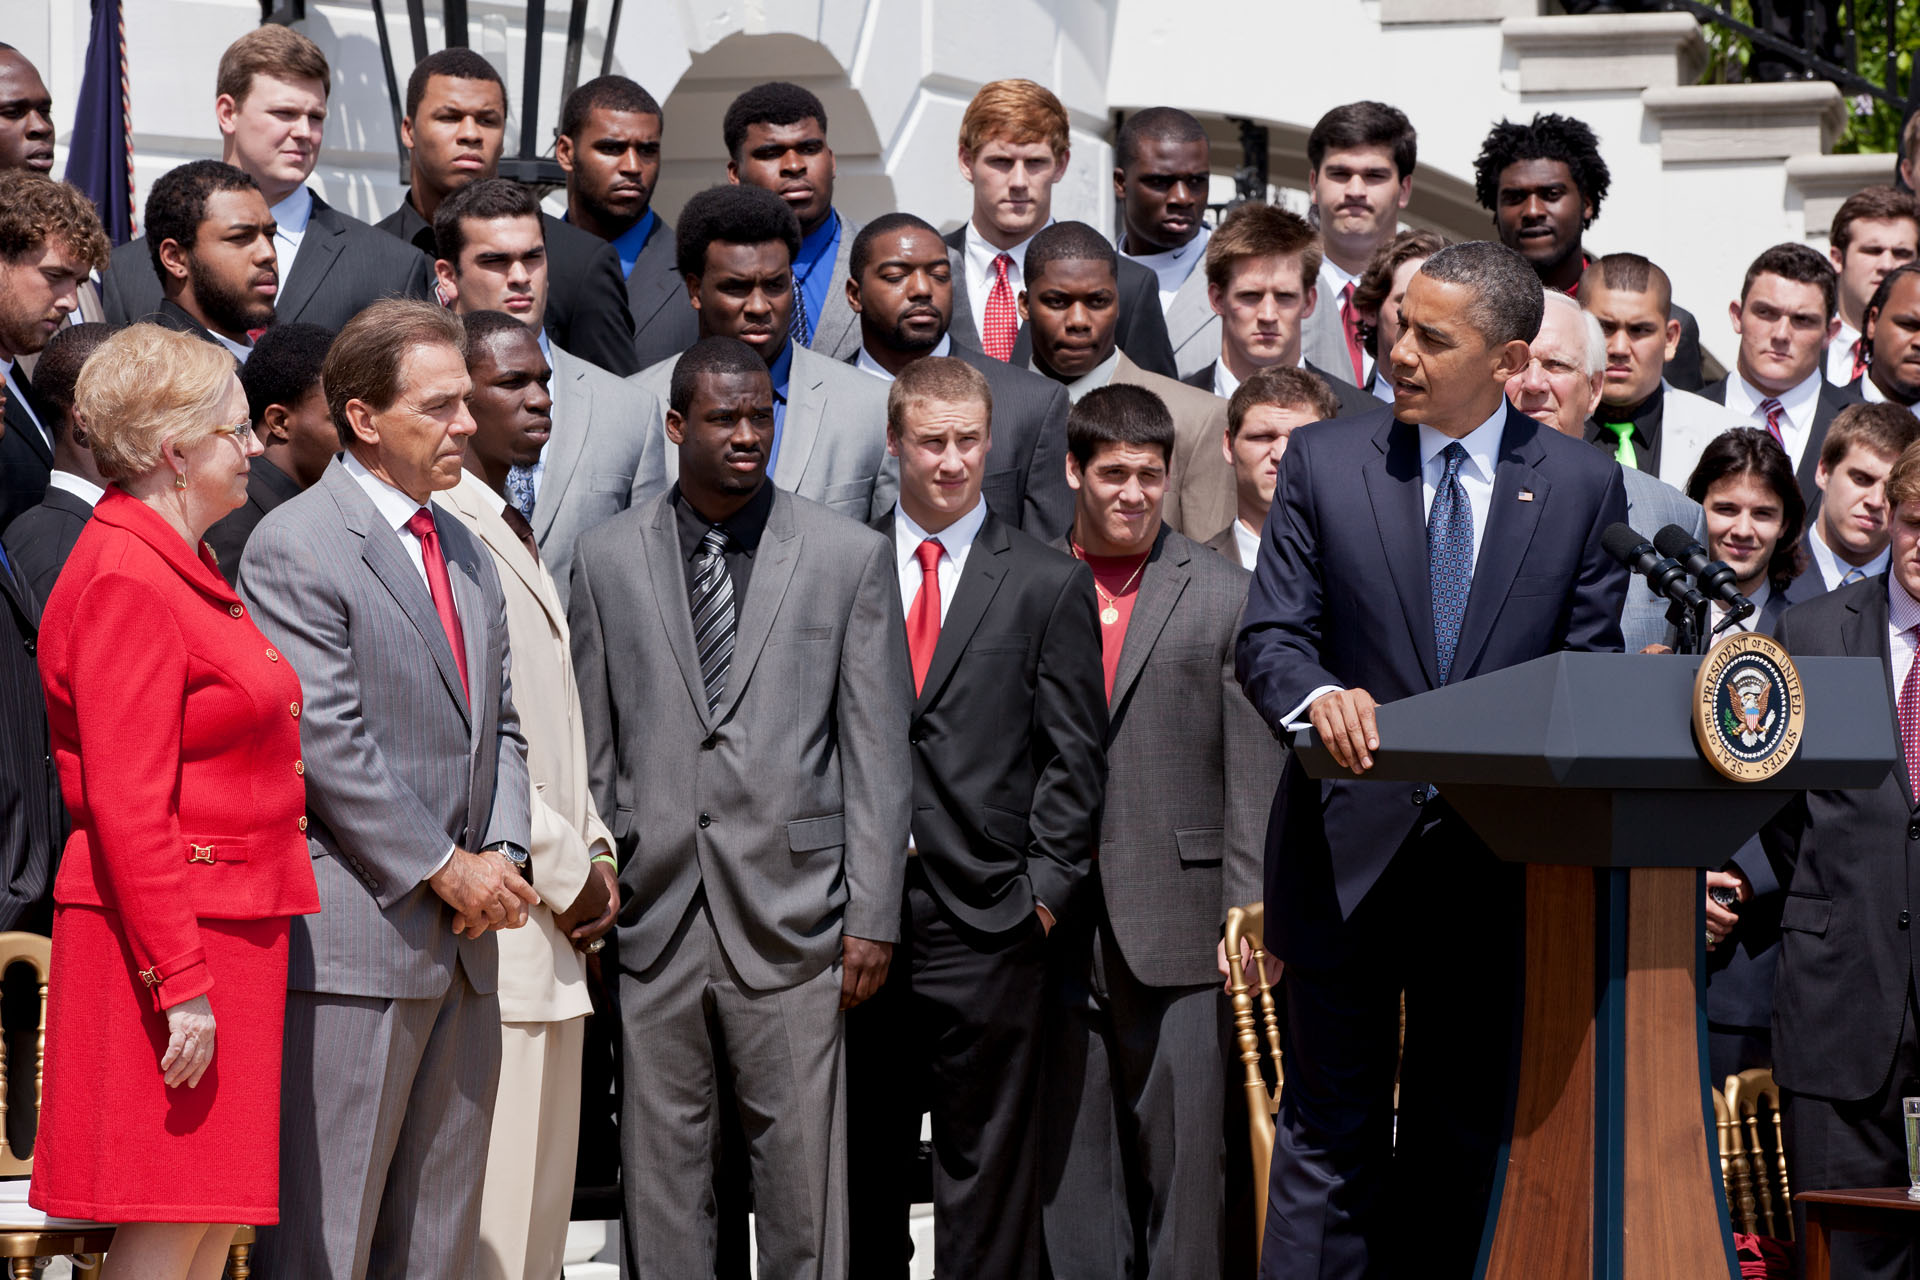 President Obama Welcomes the BCS National Champion University of Alabama football team to the White House